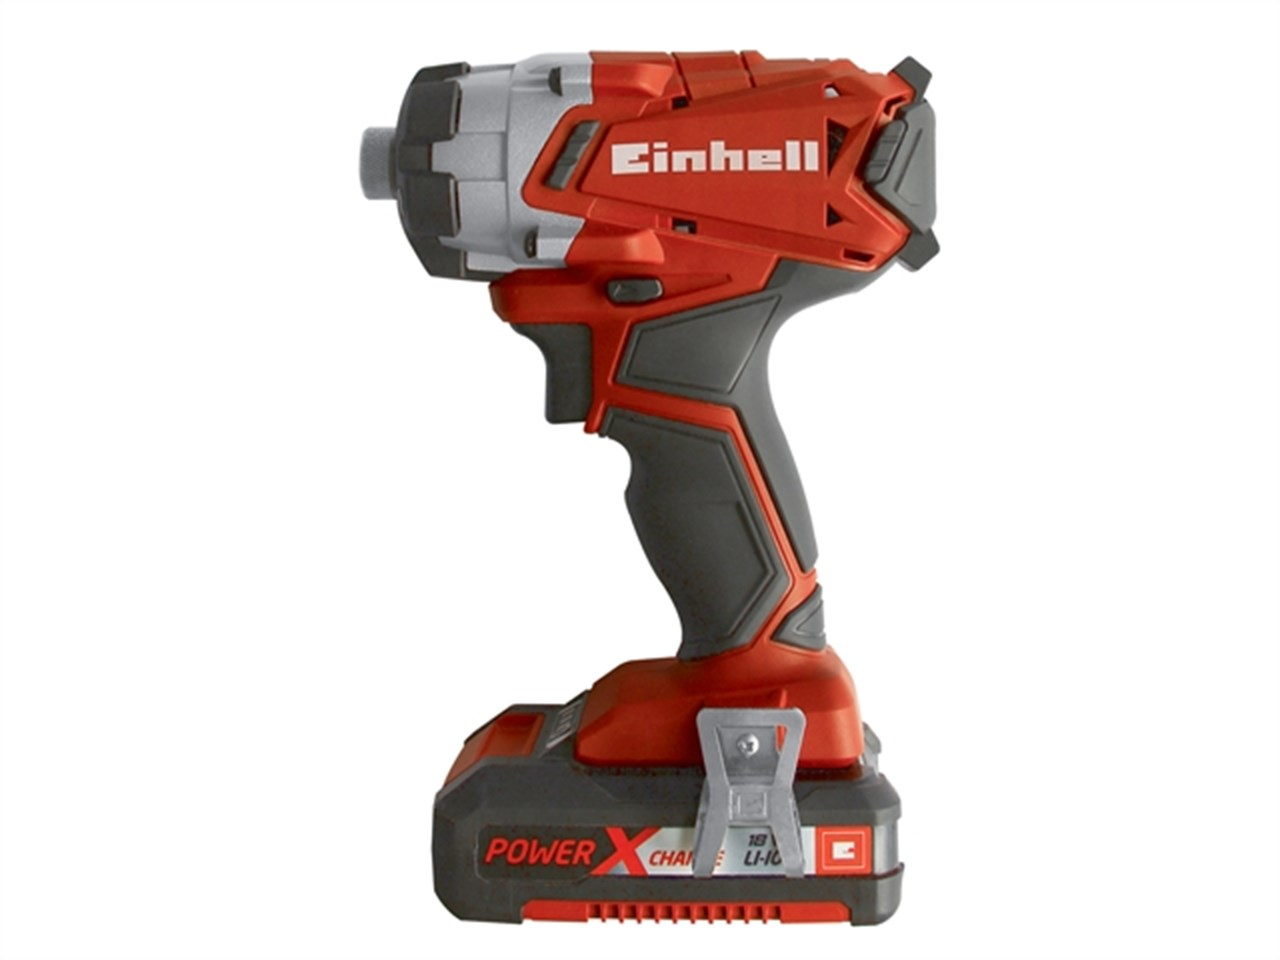 einhell te ci 18v 1 5ah li ion power x change impact driver. Black Bedroom Furniture Sets. Home Design Ideas